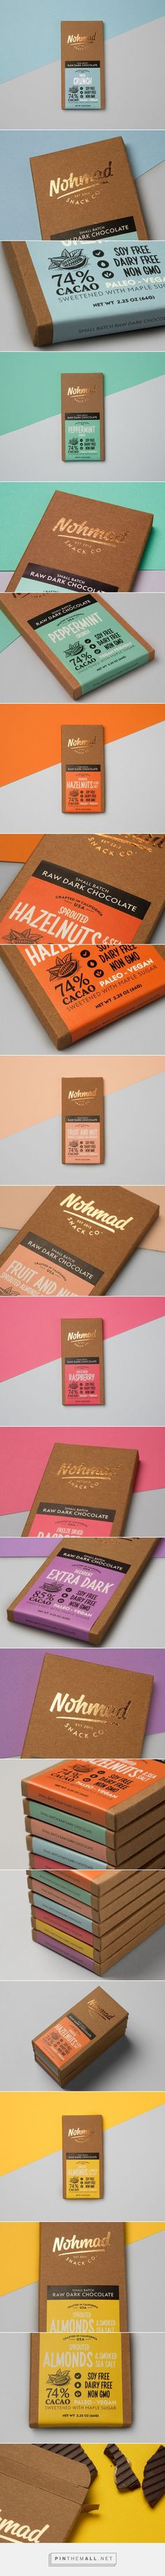 Nohmad Chocolates - Packaging of the World - Creative Package Design Gallery - http://www.packagingoftheworld.com/2016/09/nohmad-chocolates.html